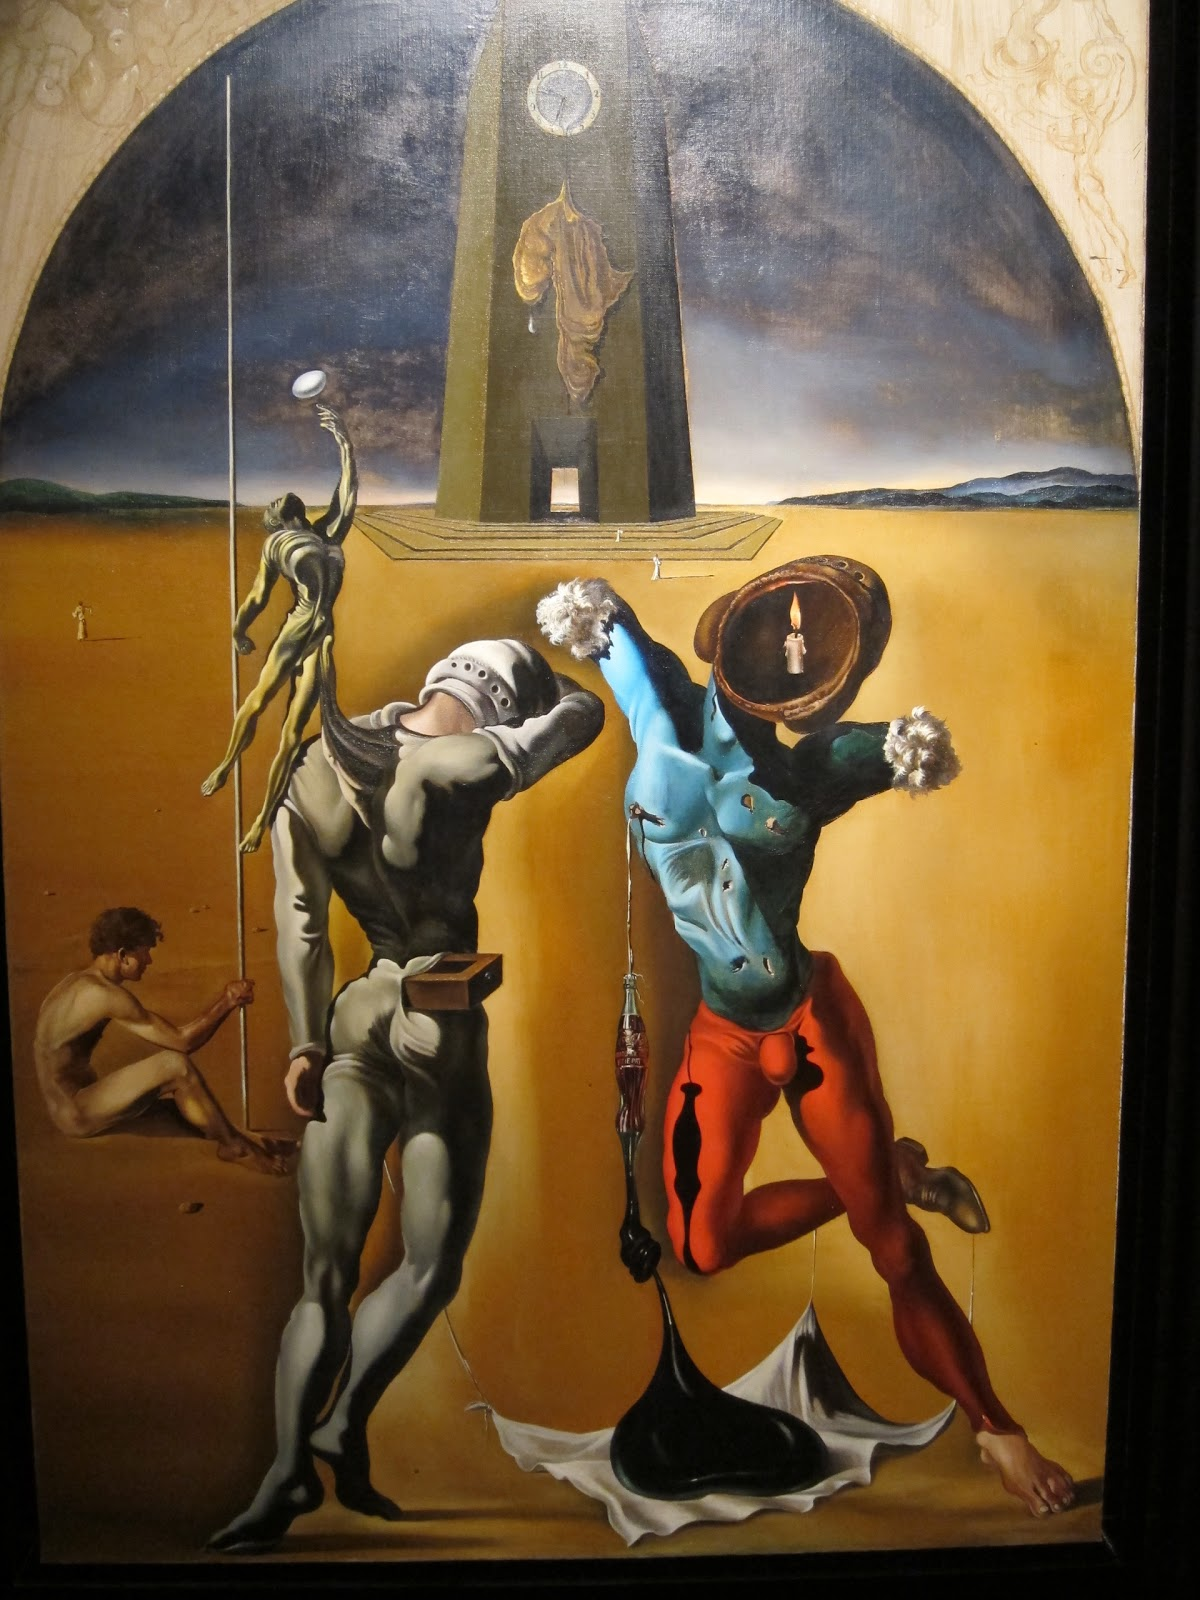 salvador dali paintings of surrealism and oil painting reproduction